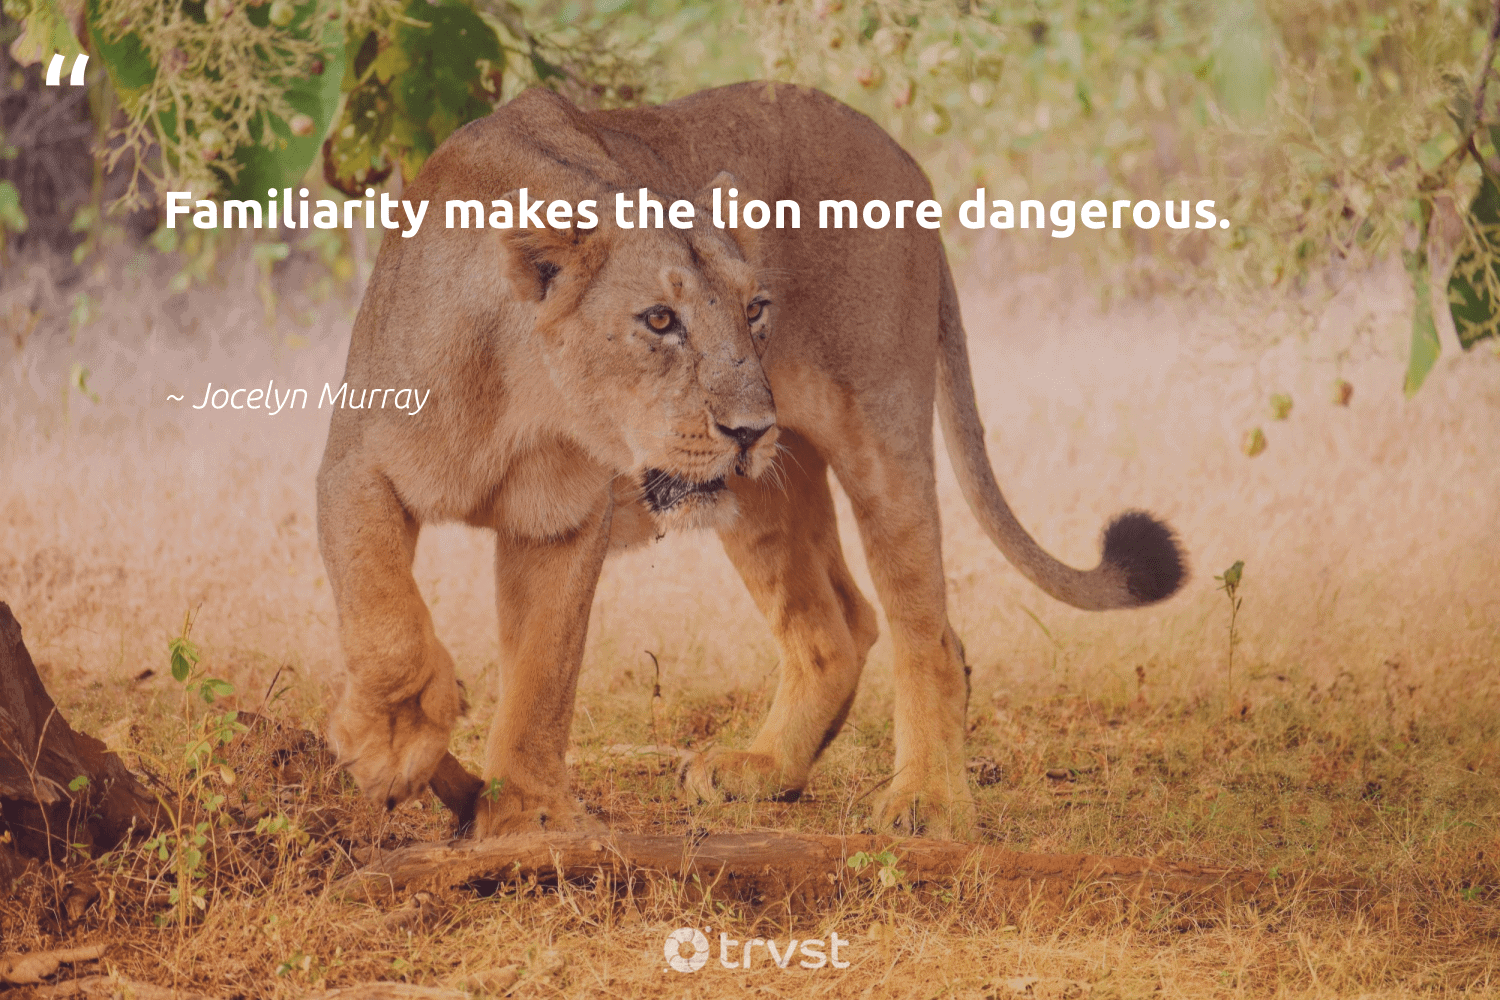 """""""Familiarity makes the lion more dangerous.""""  - Jocelyn Murray #trvst #quotes #lion #nature #dotherightthing #biodiversity #bethechange #protectnature #takeaction #amazingworld #planetearthfirst #sustainability"""